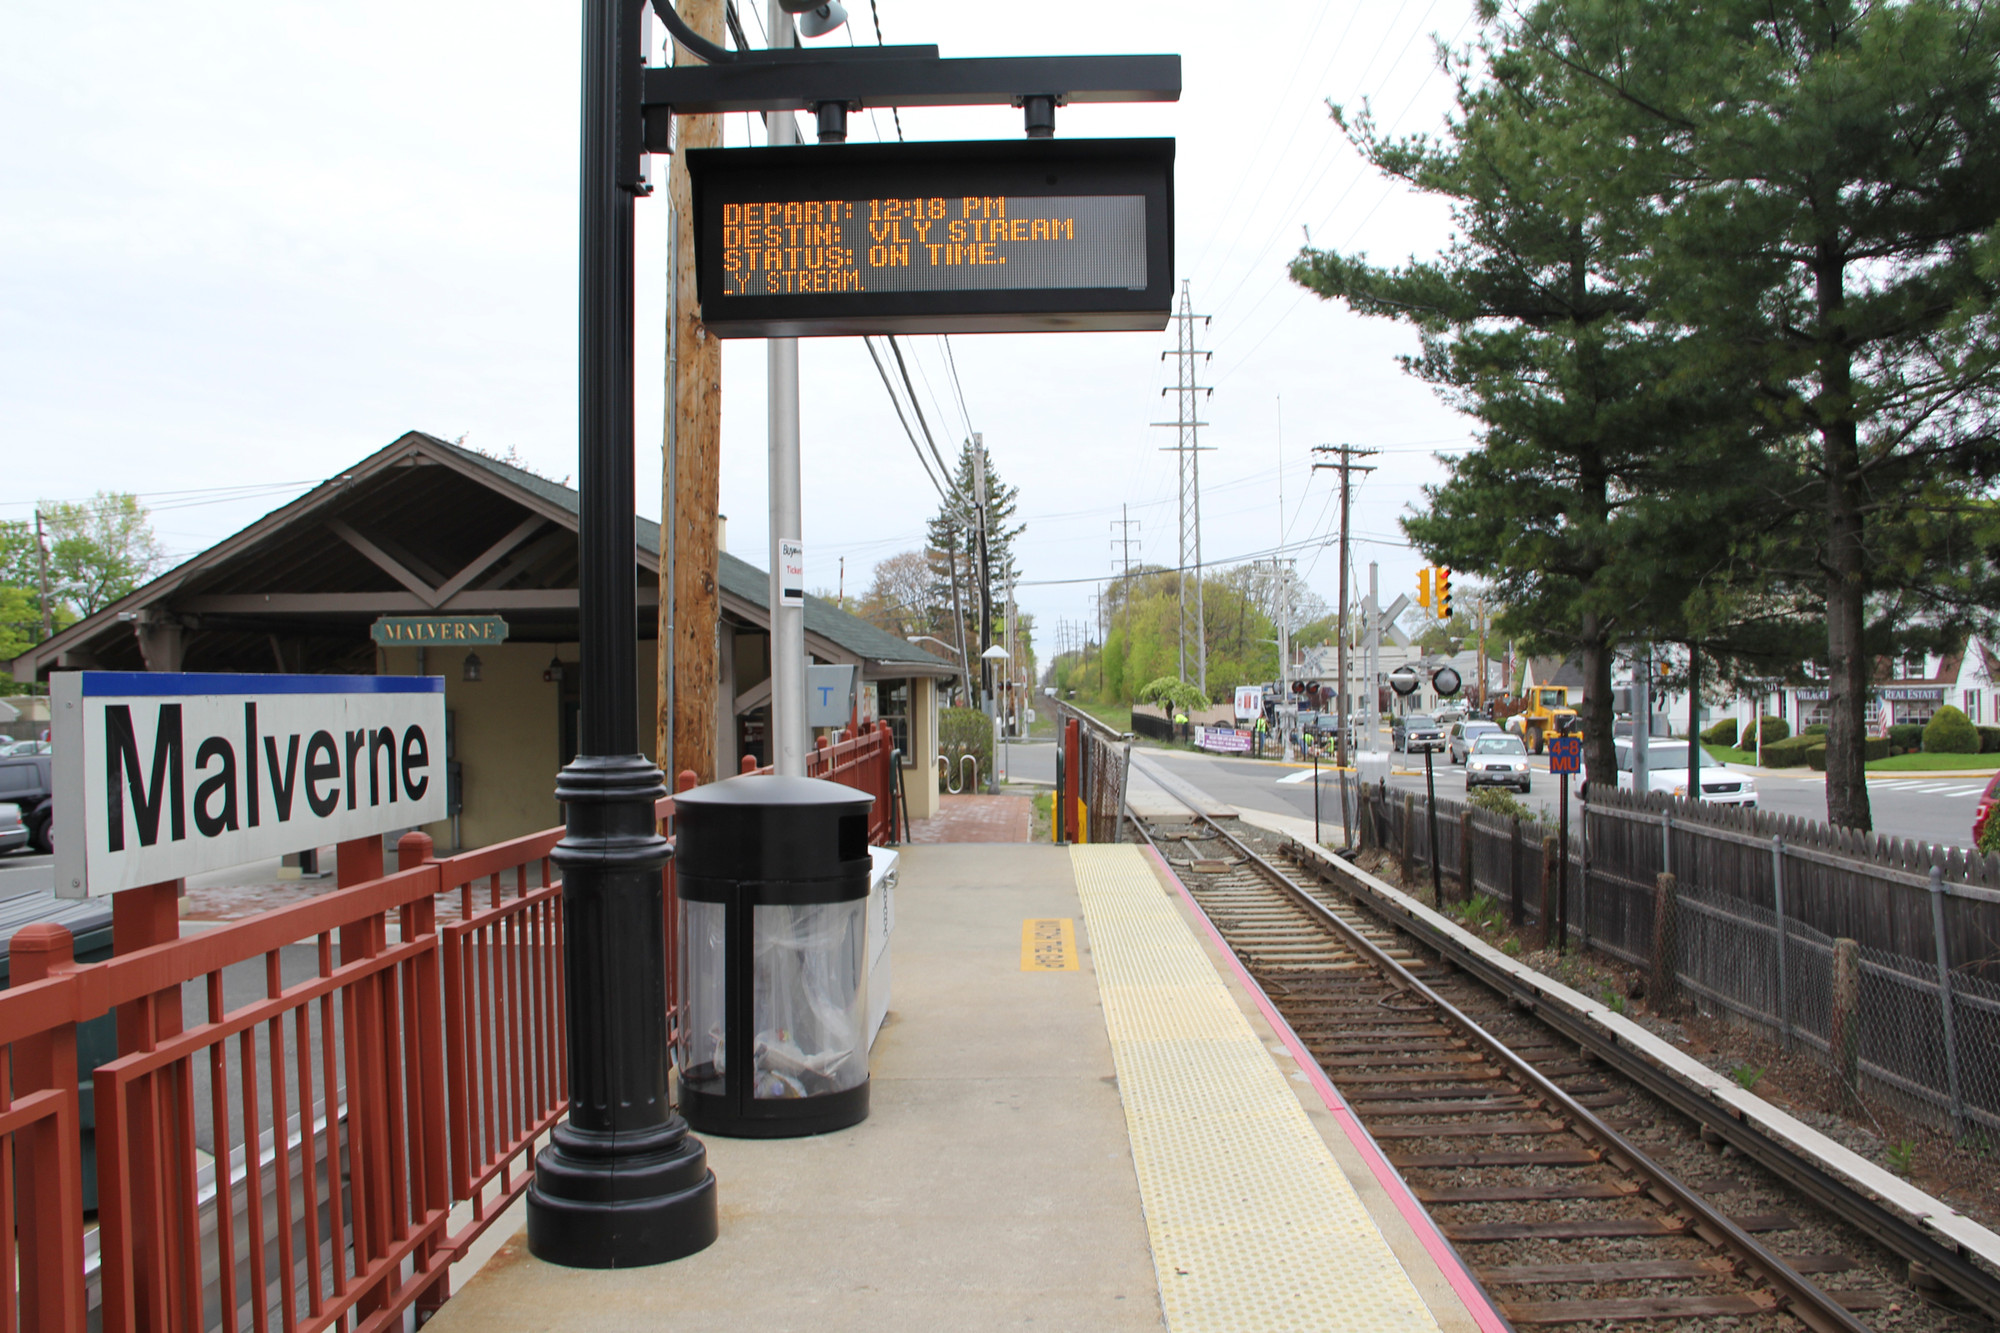 The Village of Malverne came to a standstill on Feb. 15 when motorists and pedestrians were caught in a traffic jam at the Hempstead Avenue intersection as a result of its Long Island Rail Road station being closed for maintenance. Weekend service on the West Hempstead branch remained suspended.